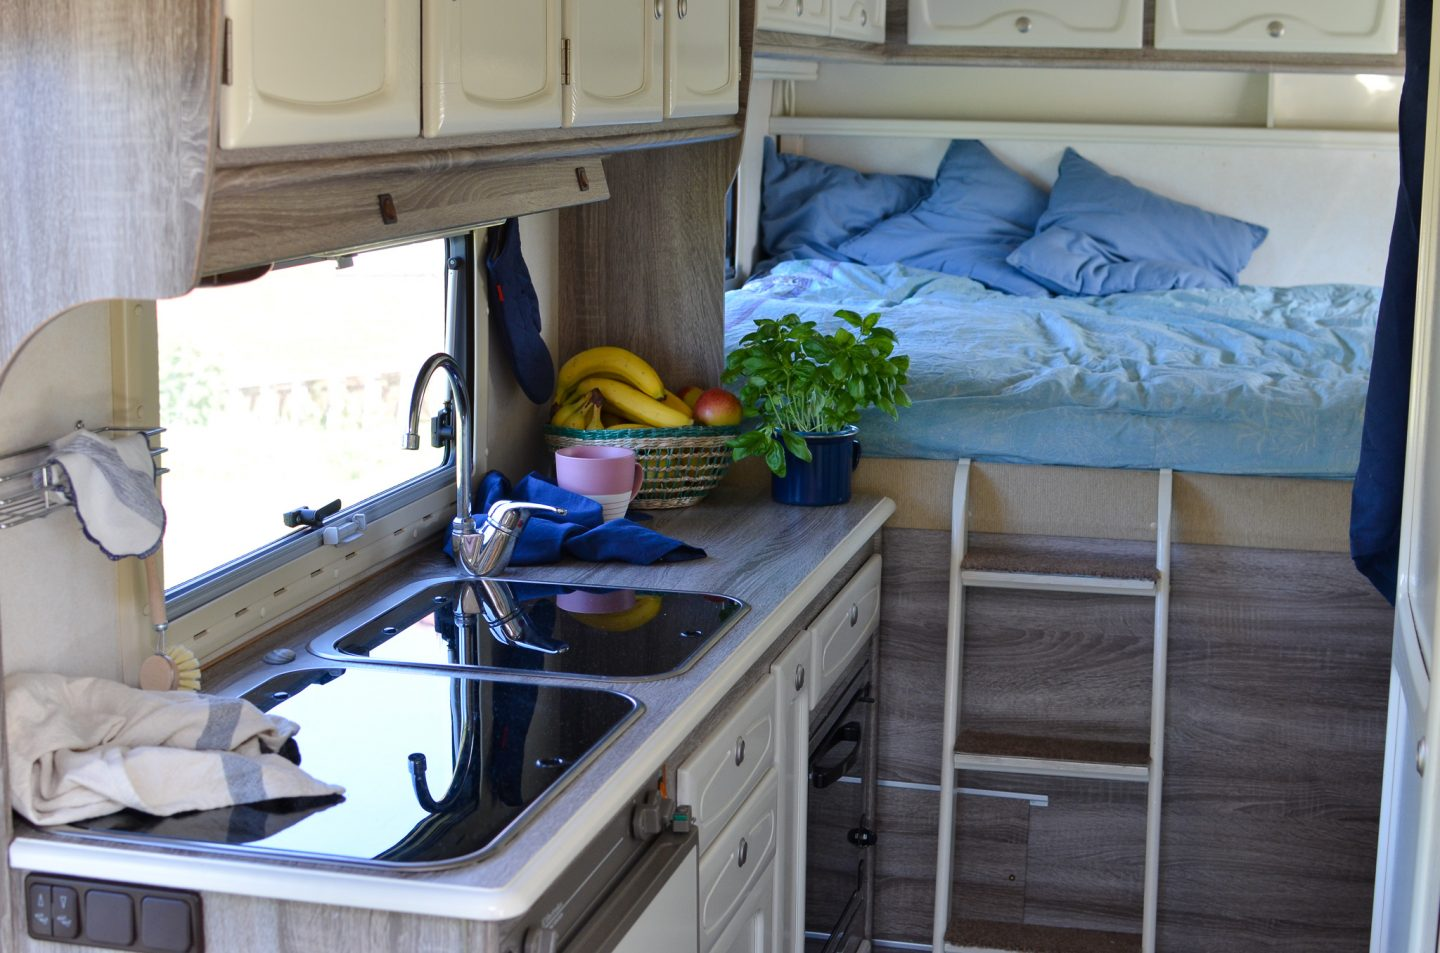 #vanlife – Interior Tips for the Camper Kitchen